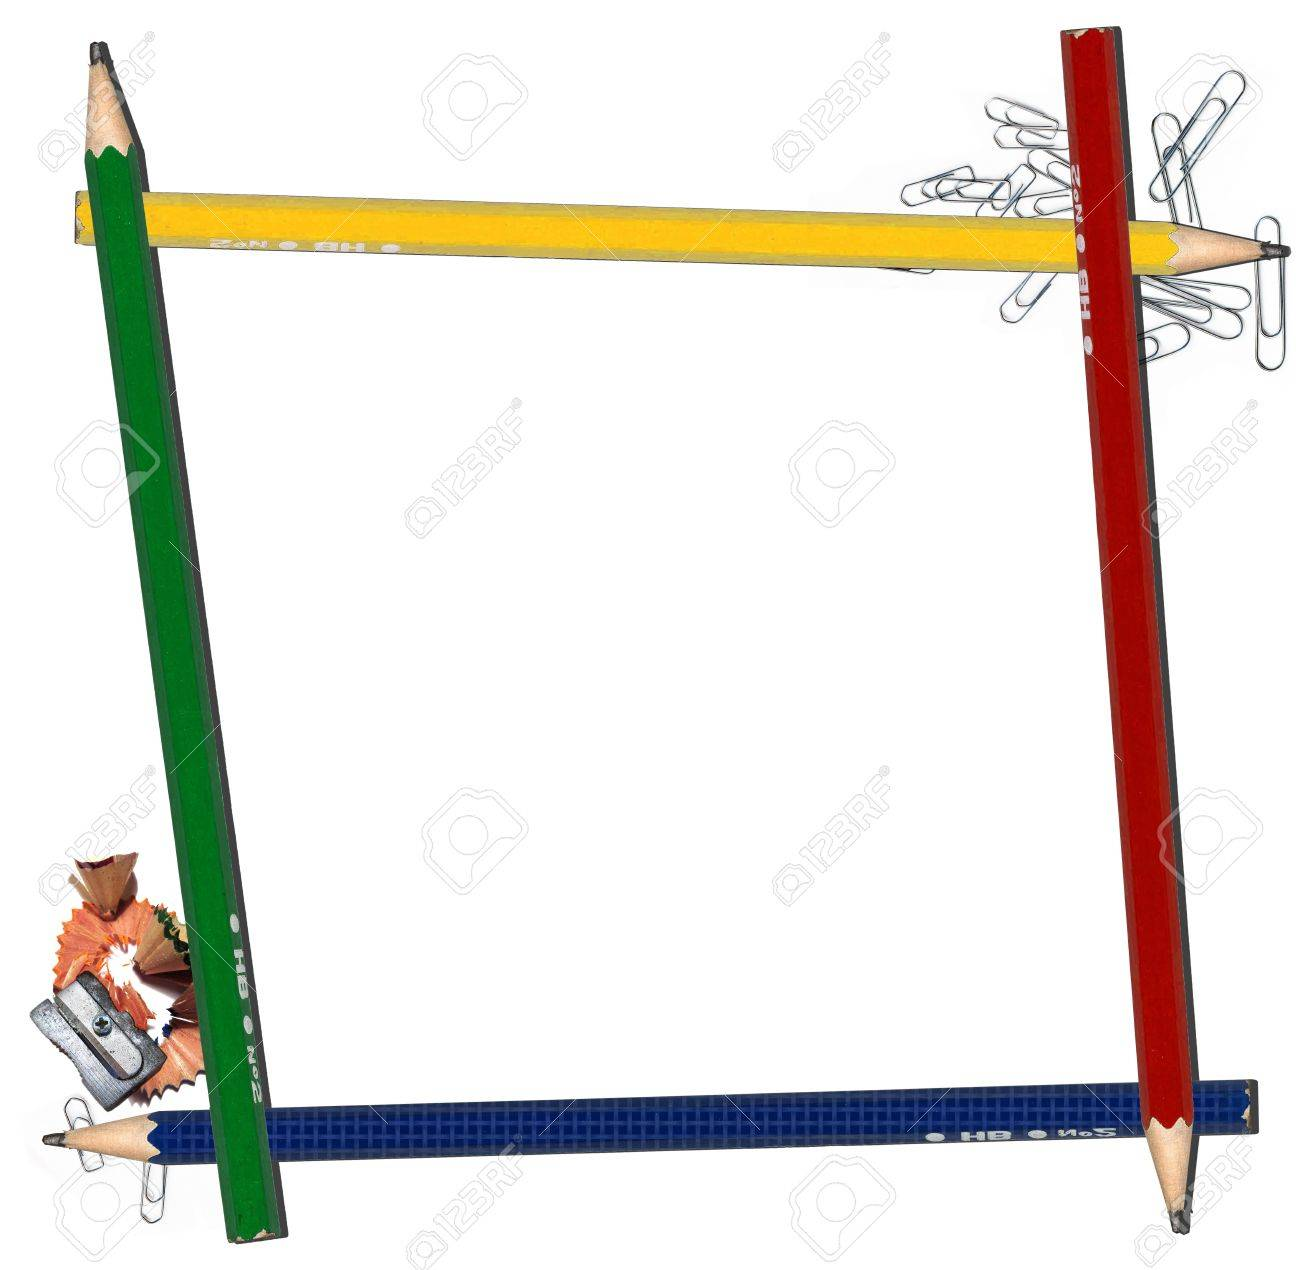 1300x1270 Picture Suggestion For Pencil Border Template